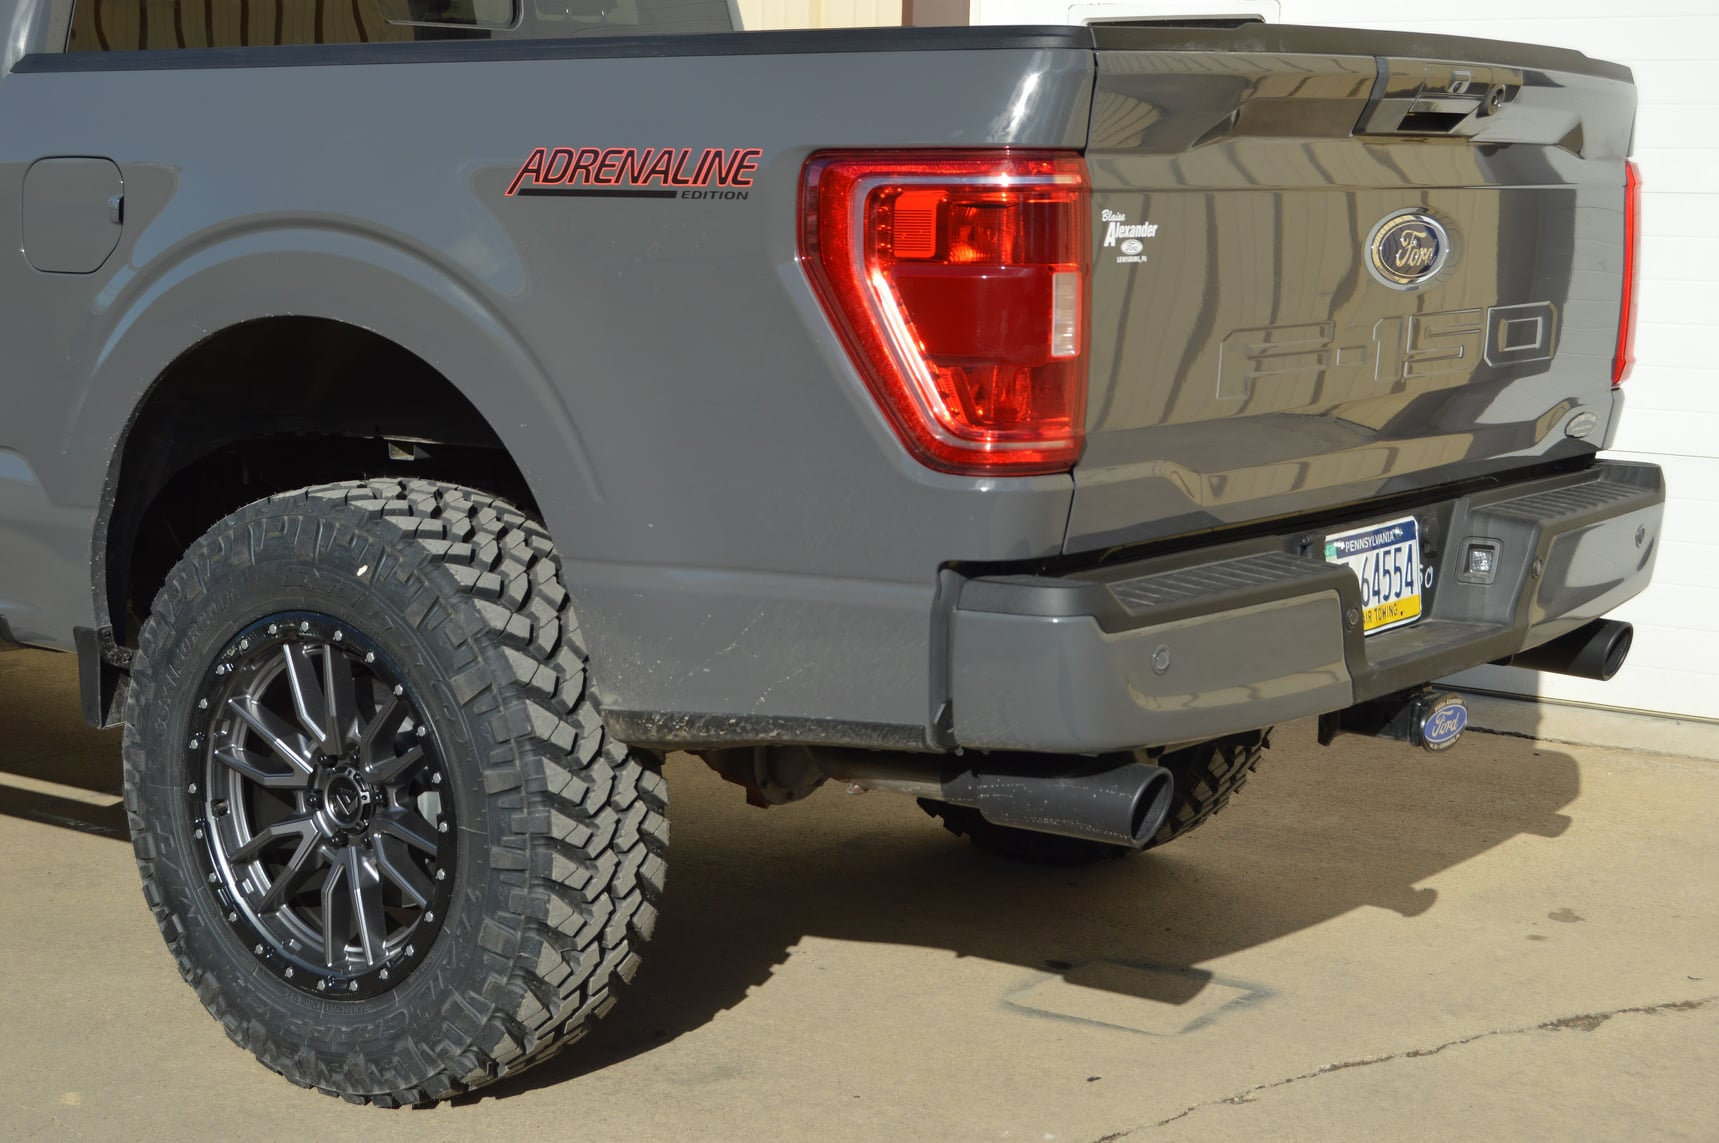 2021 F-150 3%22 Rough Country lift, 20%22 Fuel Off-Road Wheels, 35%22 Nitto Trail Grapplers, d...jpg